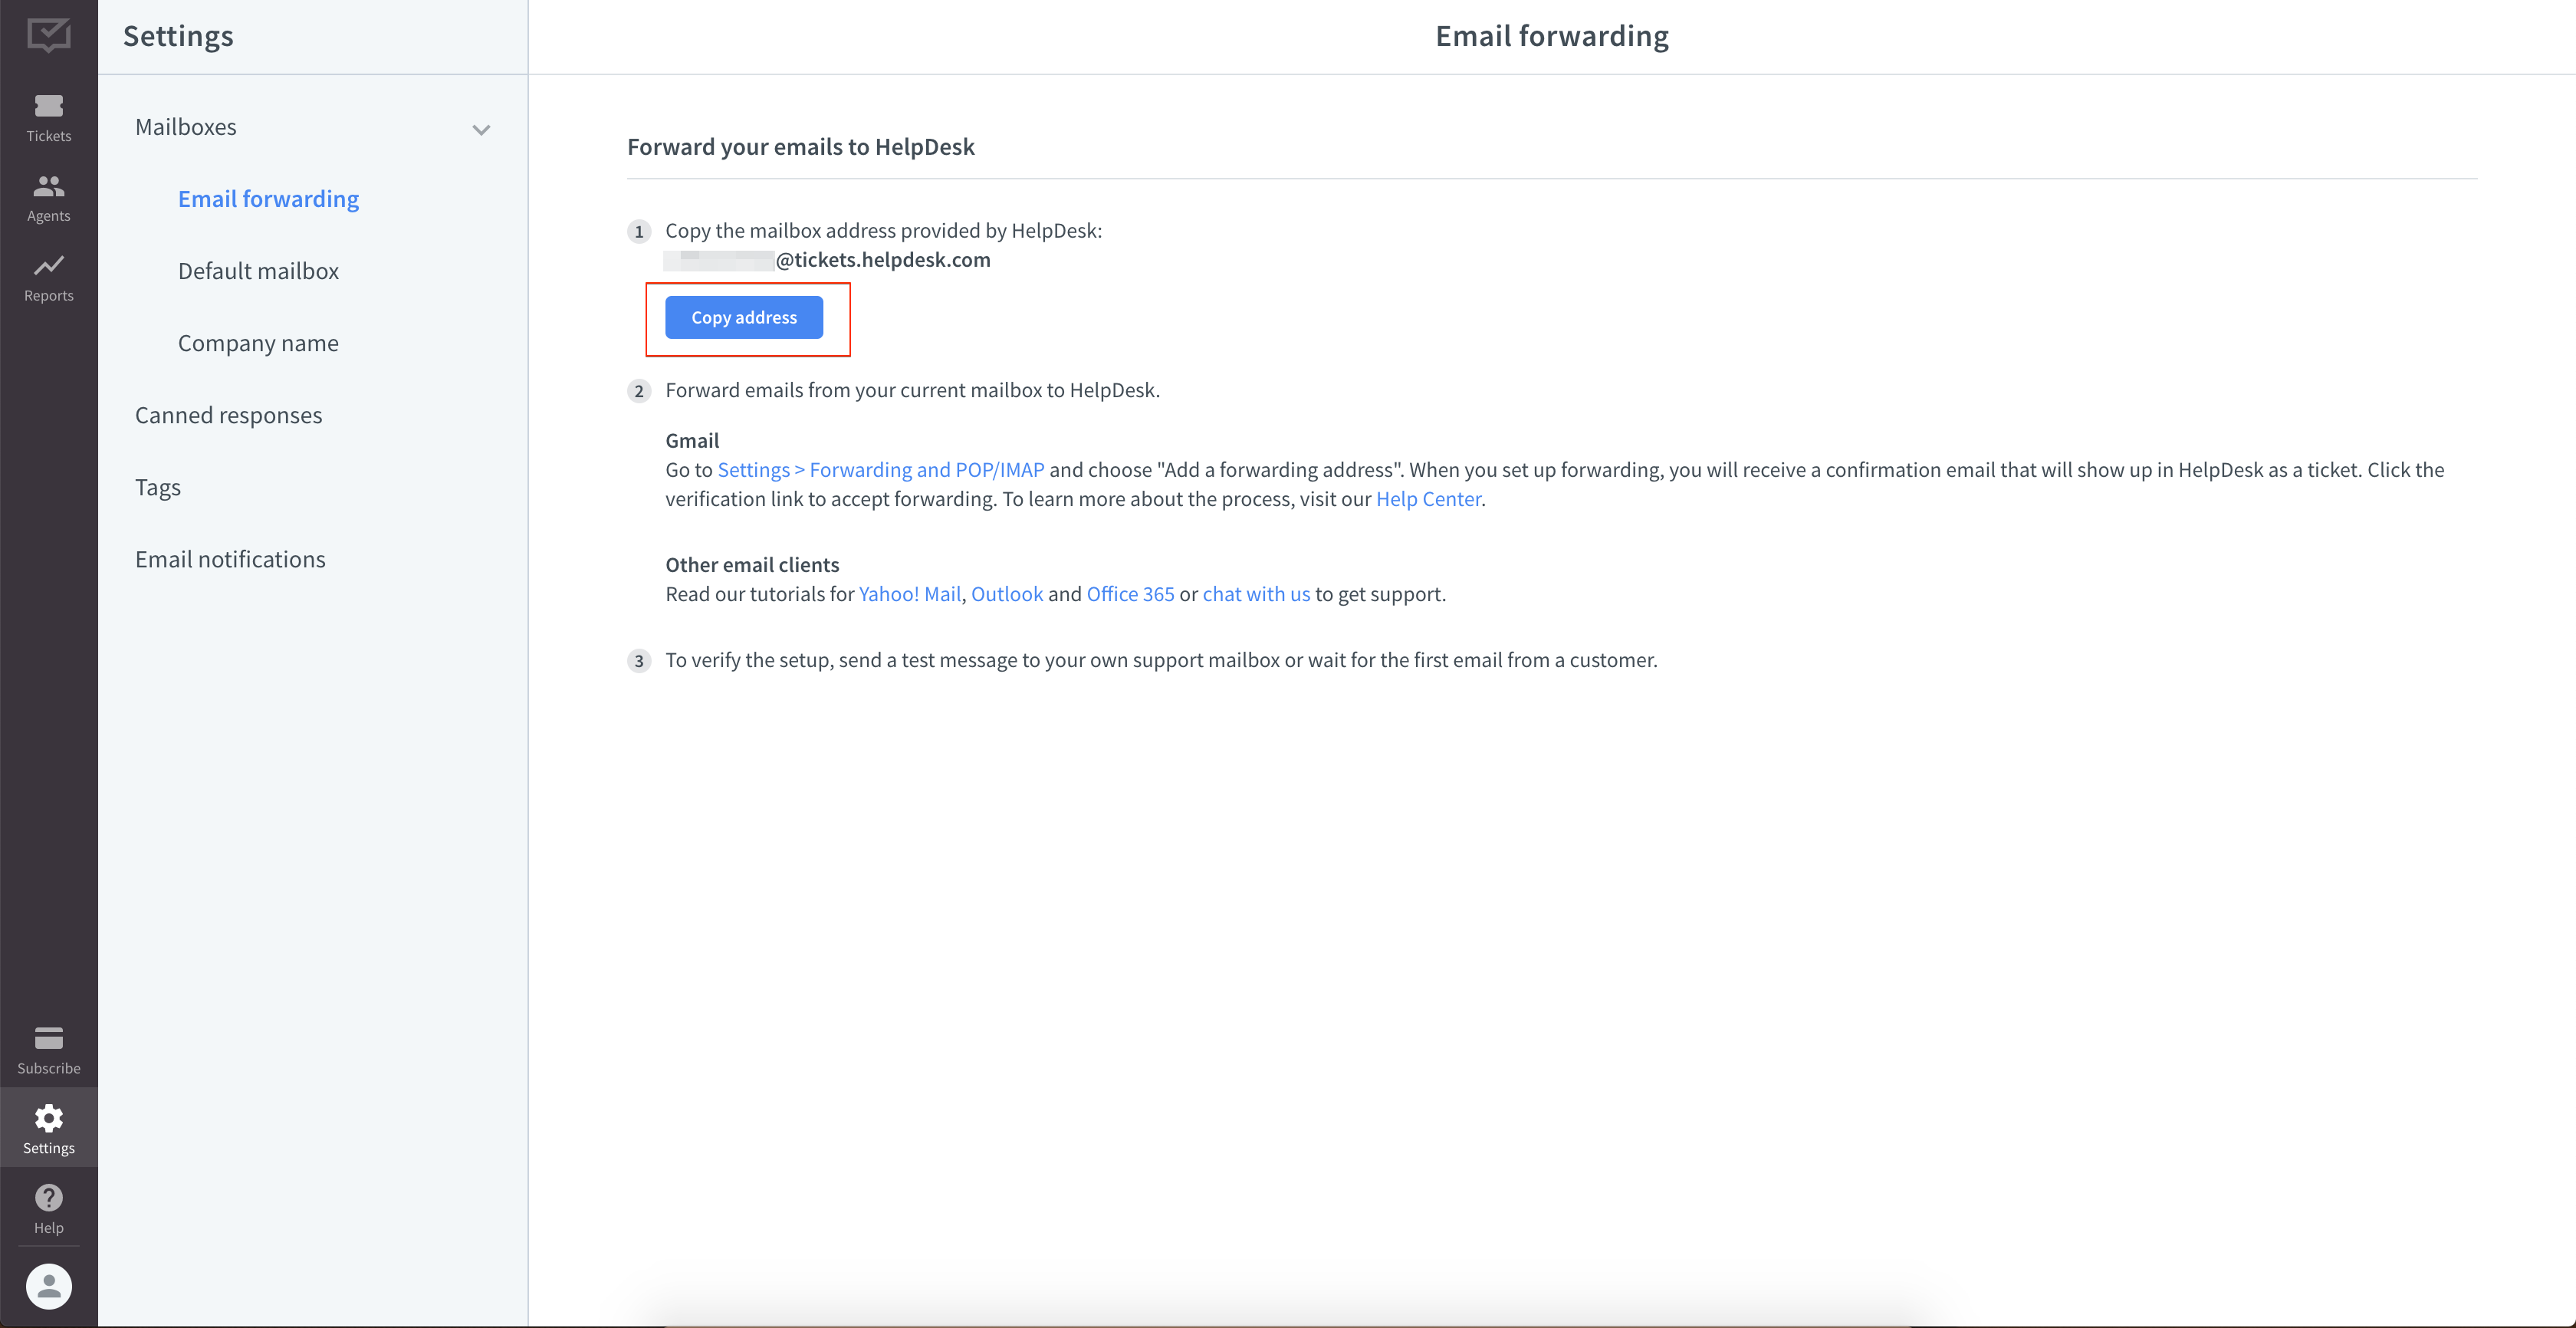 Forwarding settings in HelpDesk